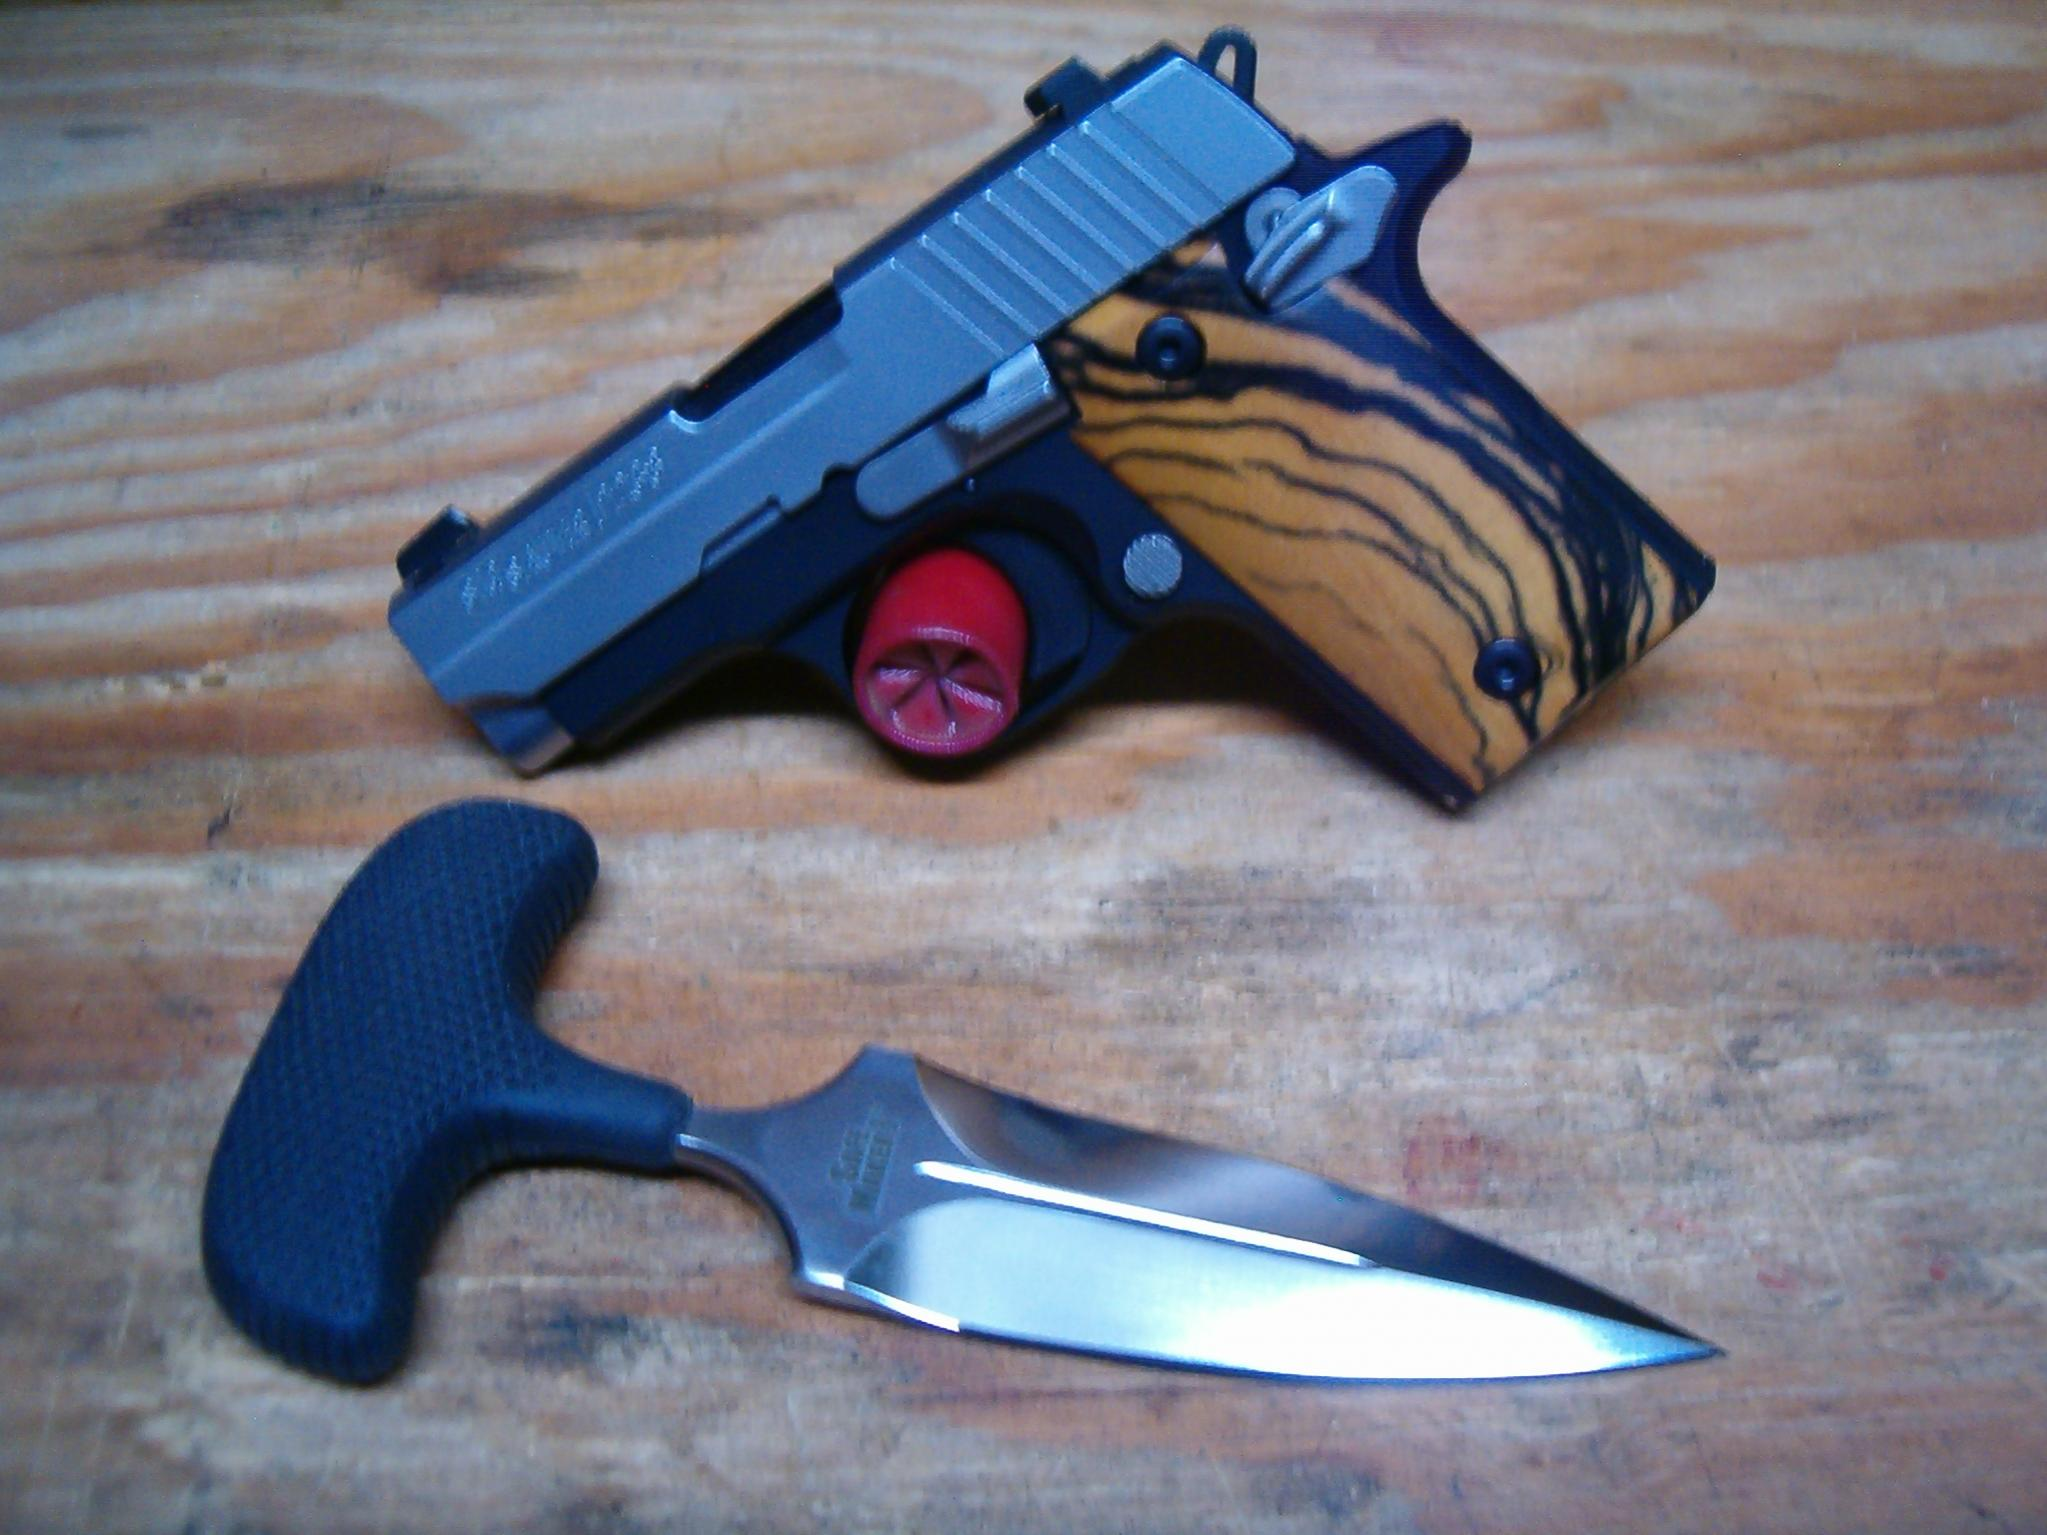 New Sig Rosewood P238-carry-pistols-008.jpg